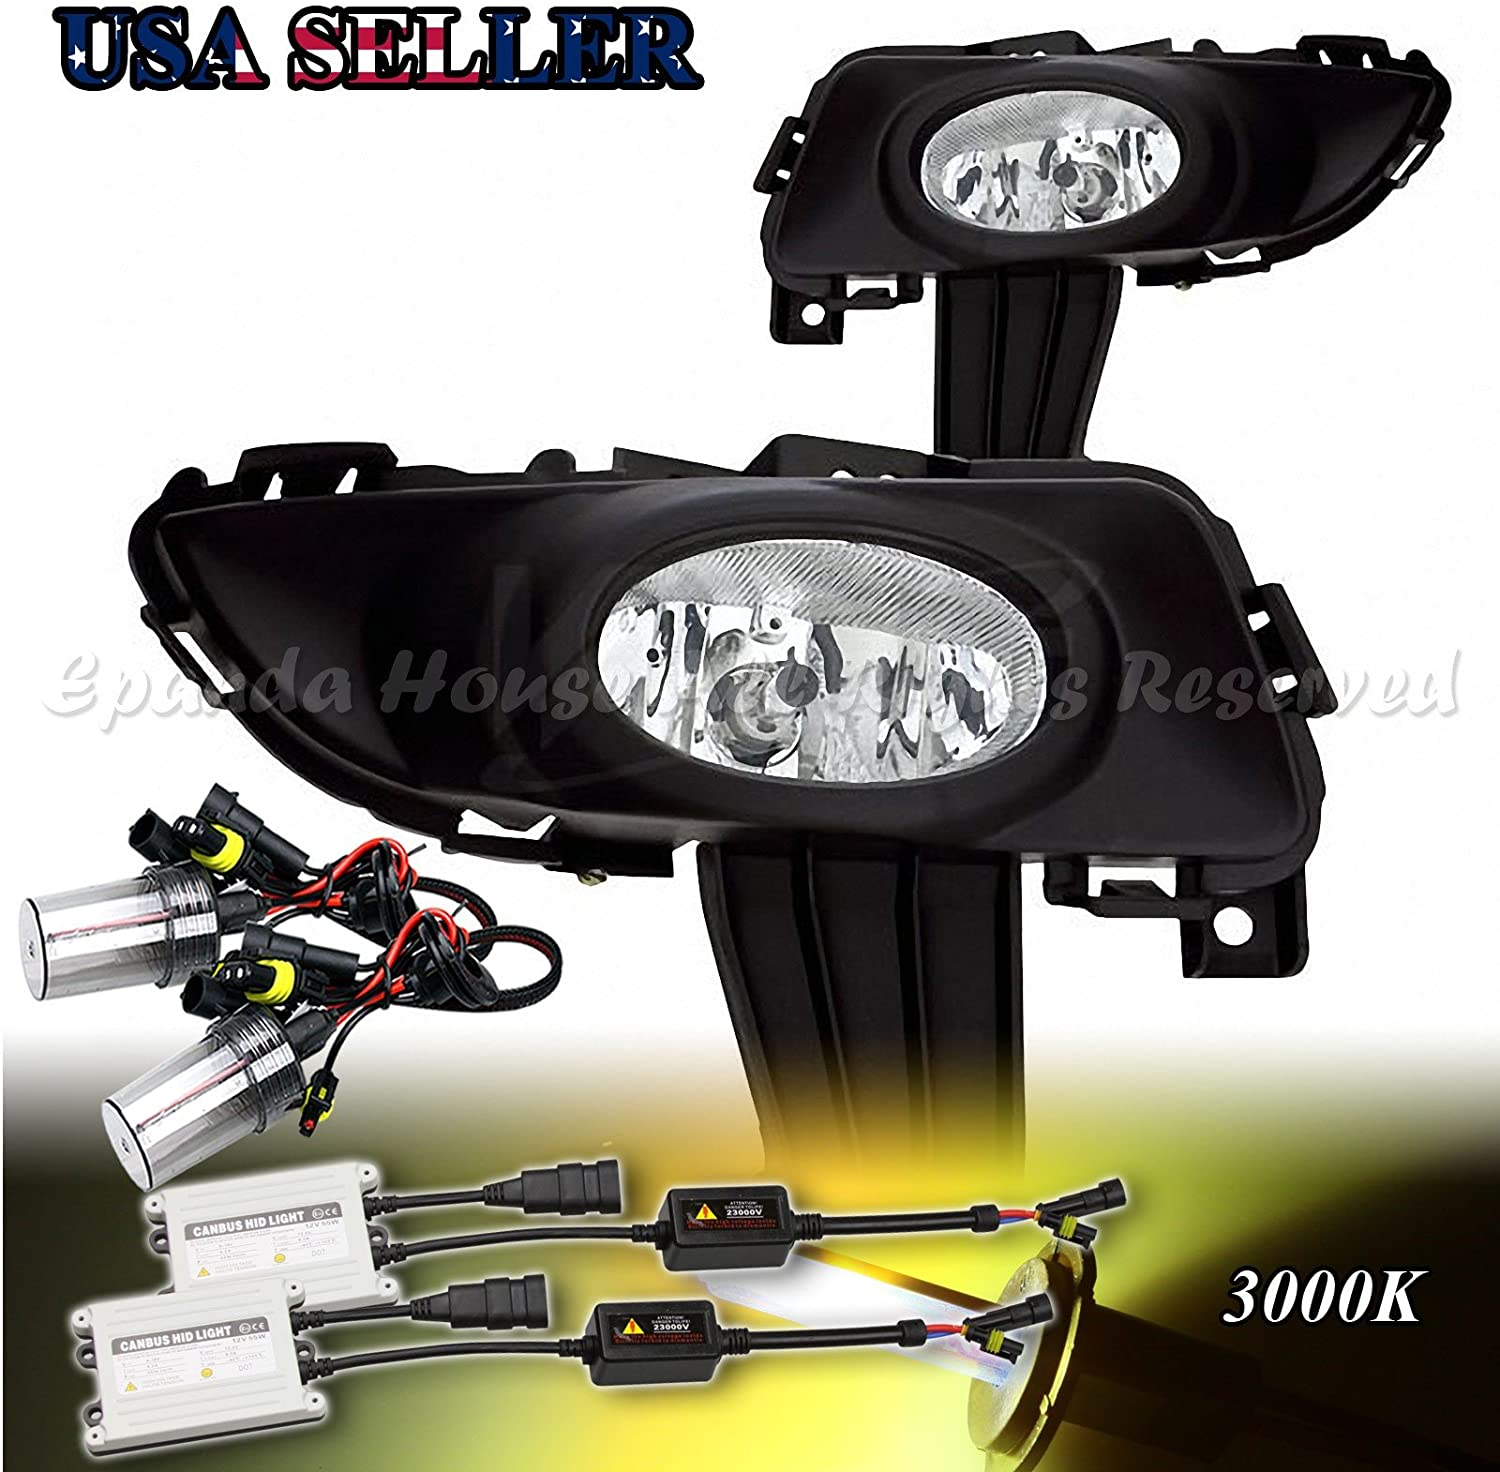 EpandaHouse Fog Lights Work for 03-05 Mazda 3 4Dr Clear Lens DOT/SAE Fog Lights Work Direct Fit+3000K 55W HID